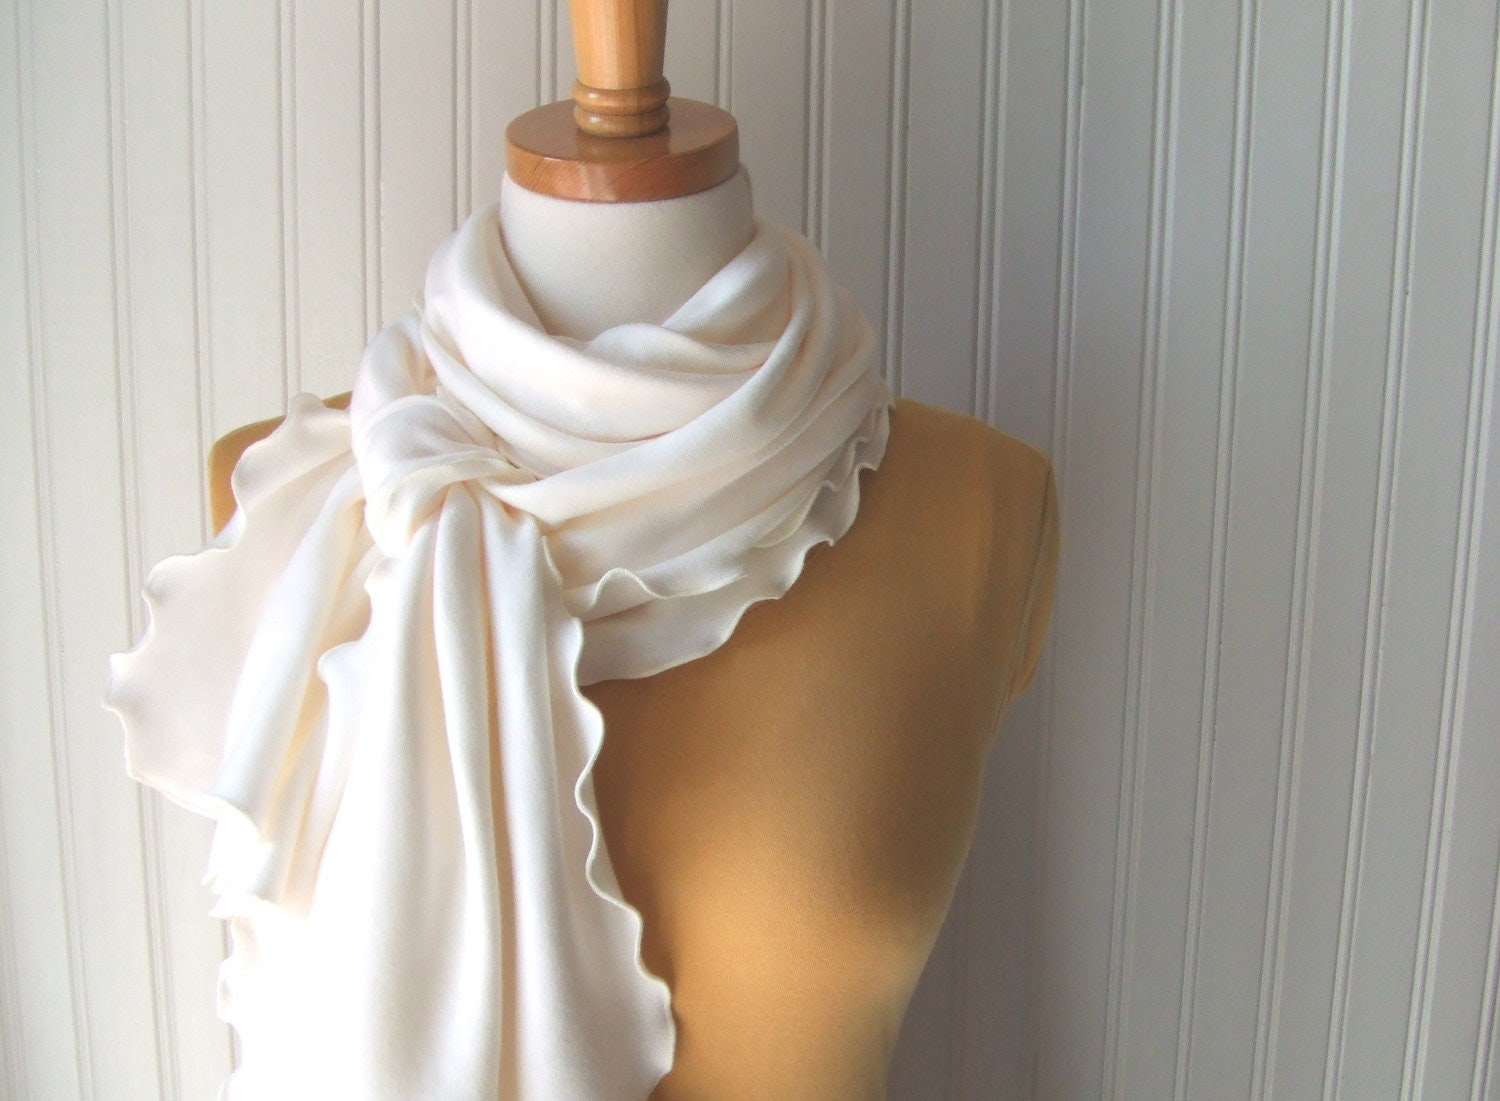 Vanilla Cream Ruffle Scarf - Cotton Jersey Ruffled Scarf in Ivory - Fall Autumn Fashion Gift Under 20 - JannysGirl